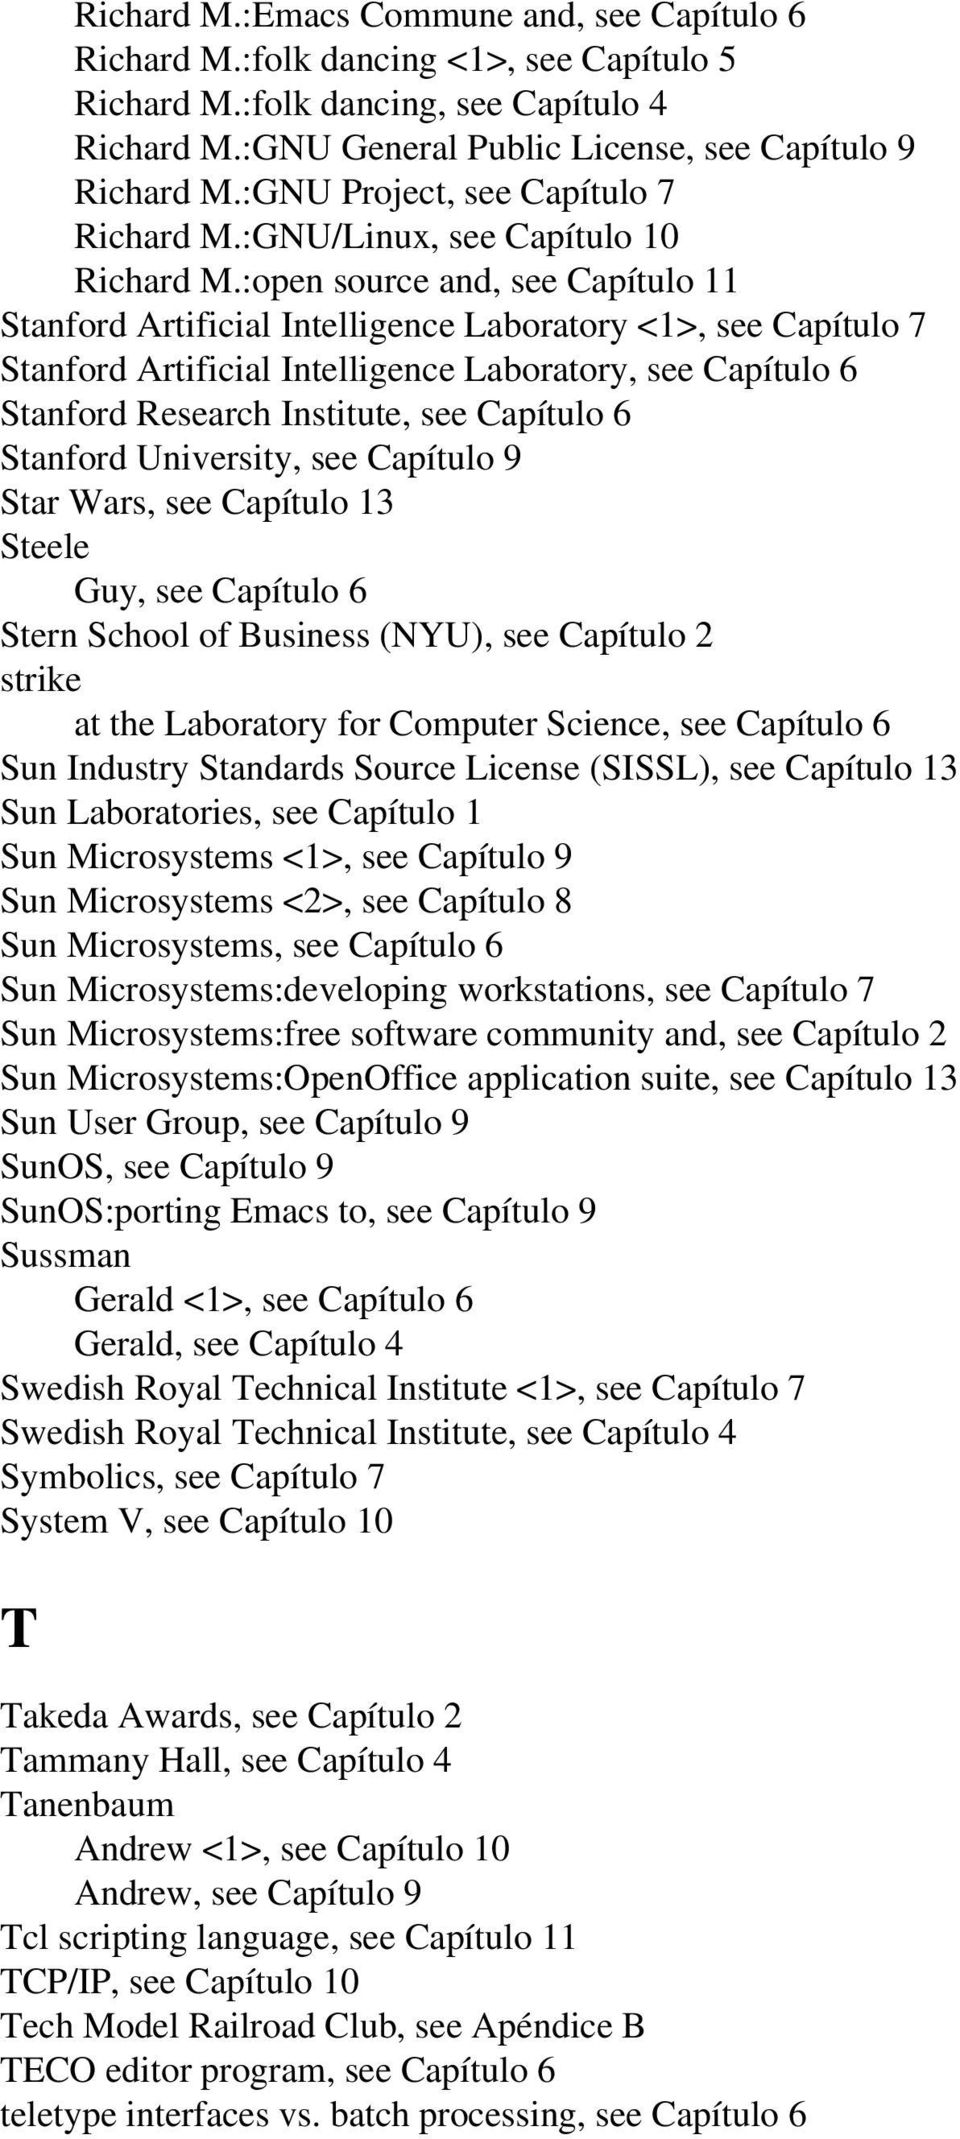 :open source and, see Capítulo 11 Stanford Artificial Intelligence Laboratory <1>, see Capítulo 7 Stanford Artificial Intelligence Laboratory, see Capítulo 6 Stanford Research Institute, see Capítulo